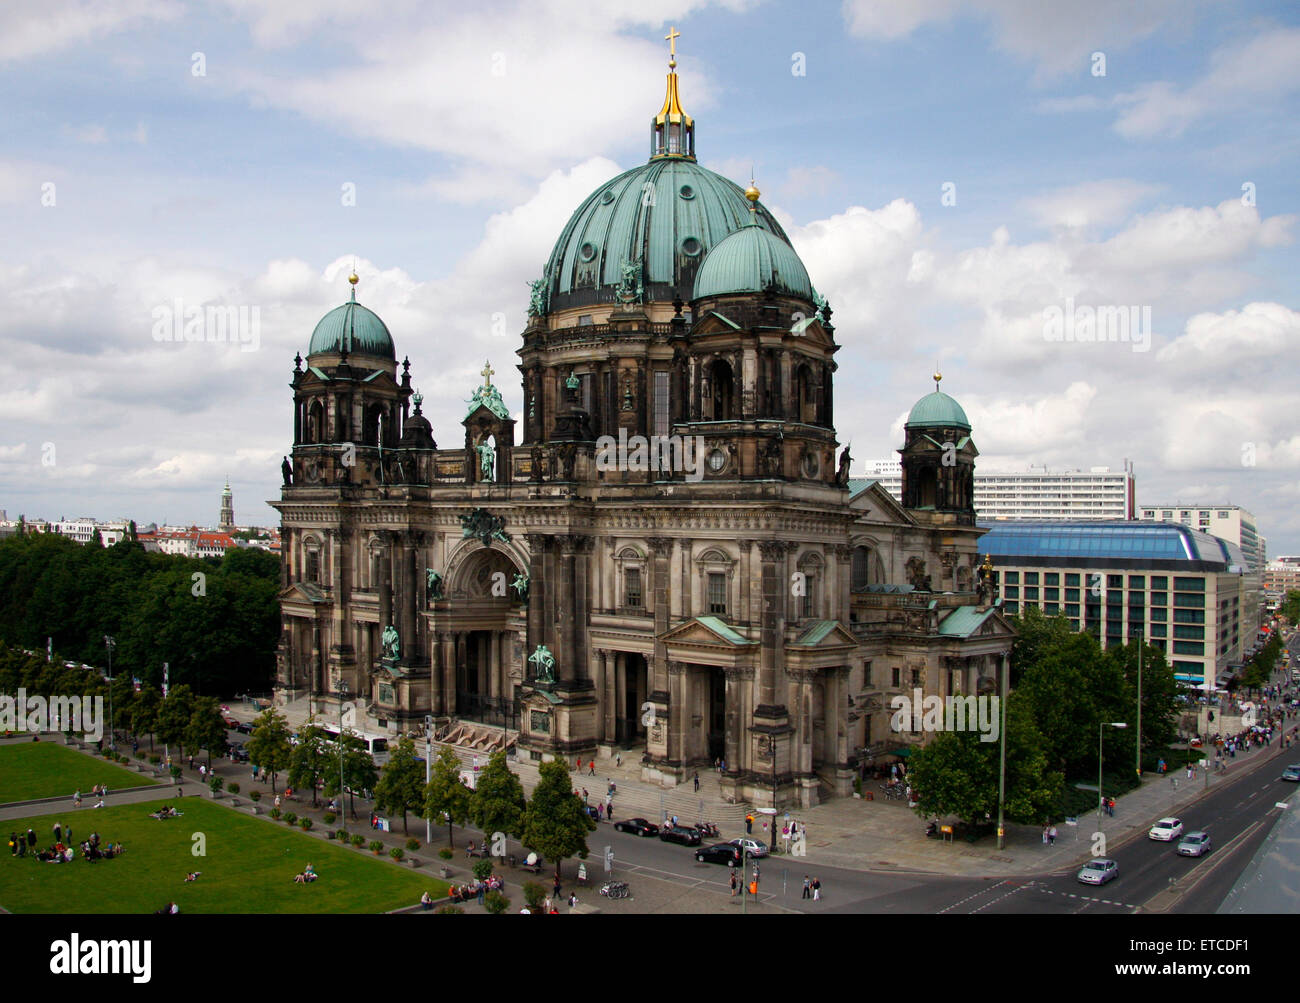 JUNE 2012 - BERLIN: aerial view of the 'Berliner Dom' (Berlin Cathedral) in the Mitte district of Berlin. - Stock Image